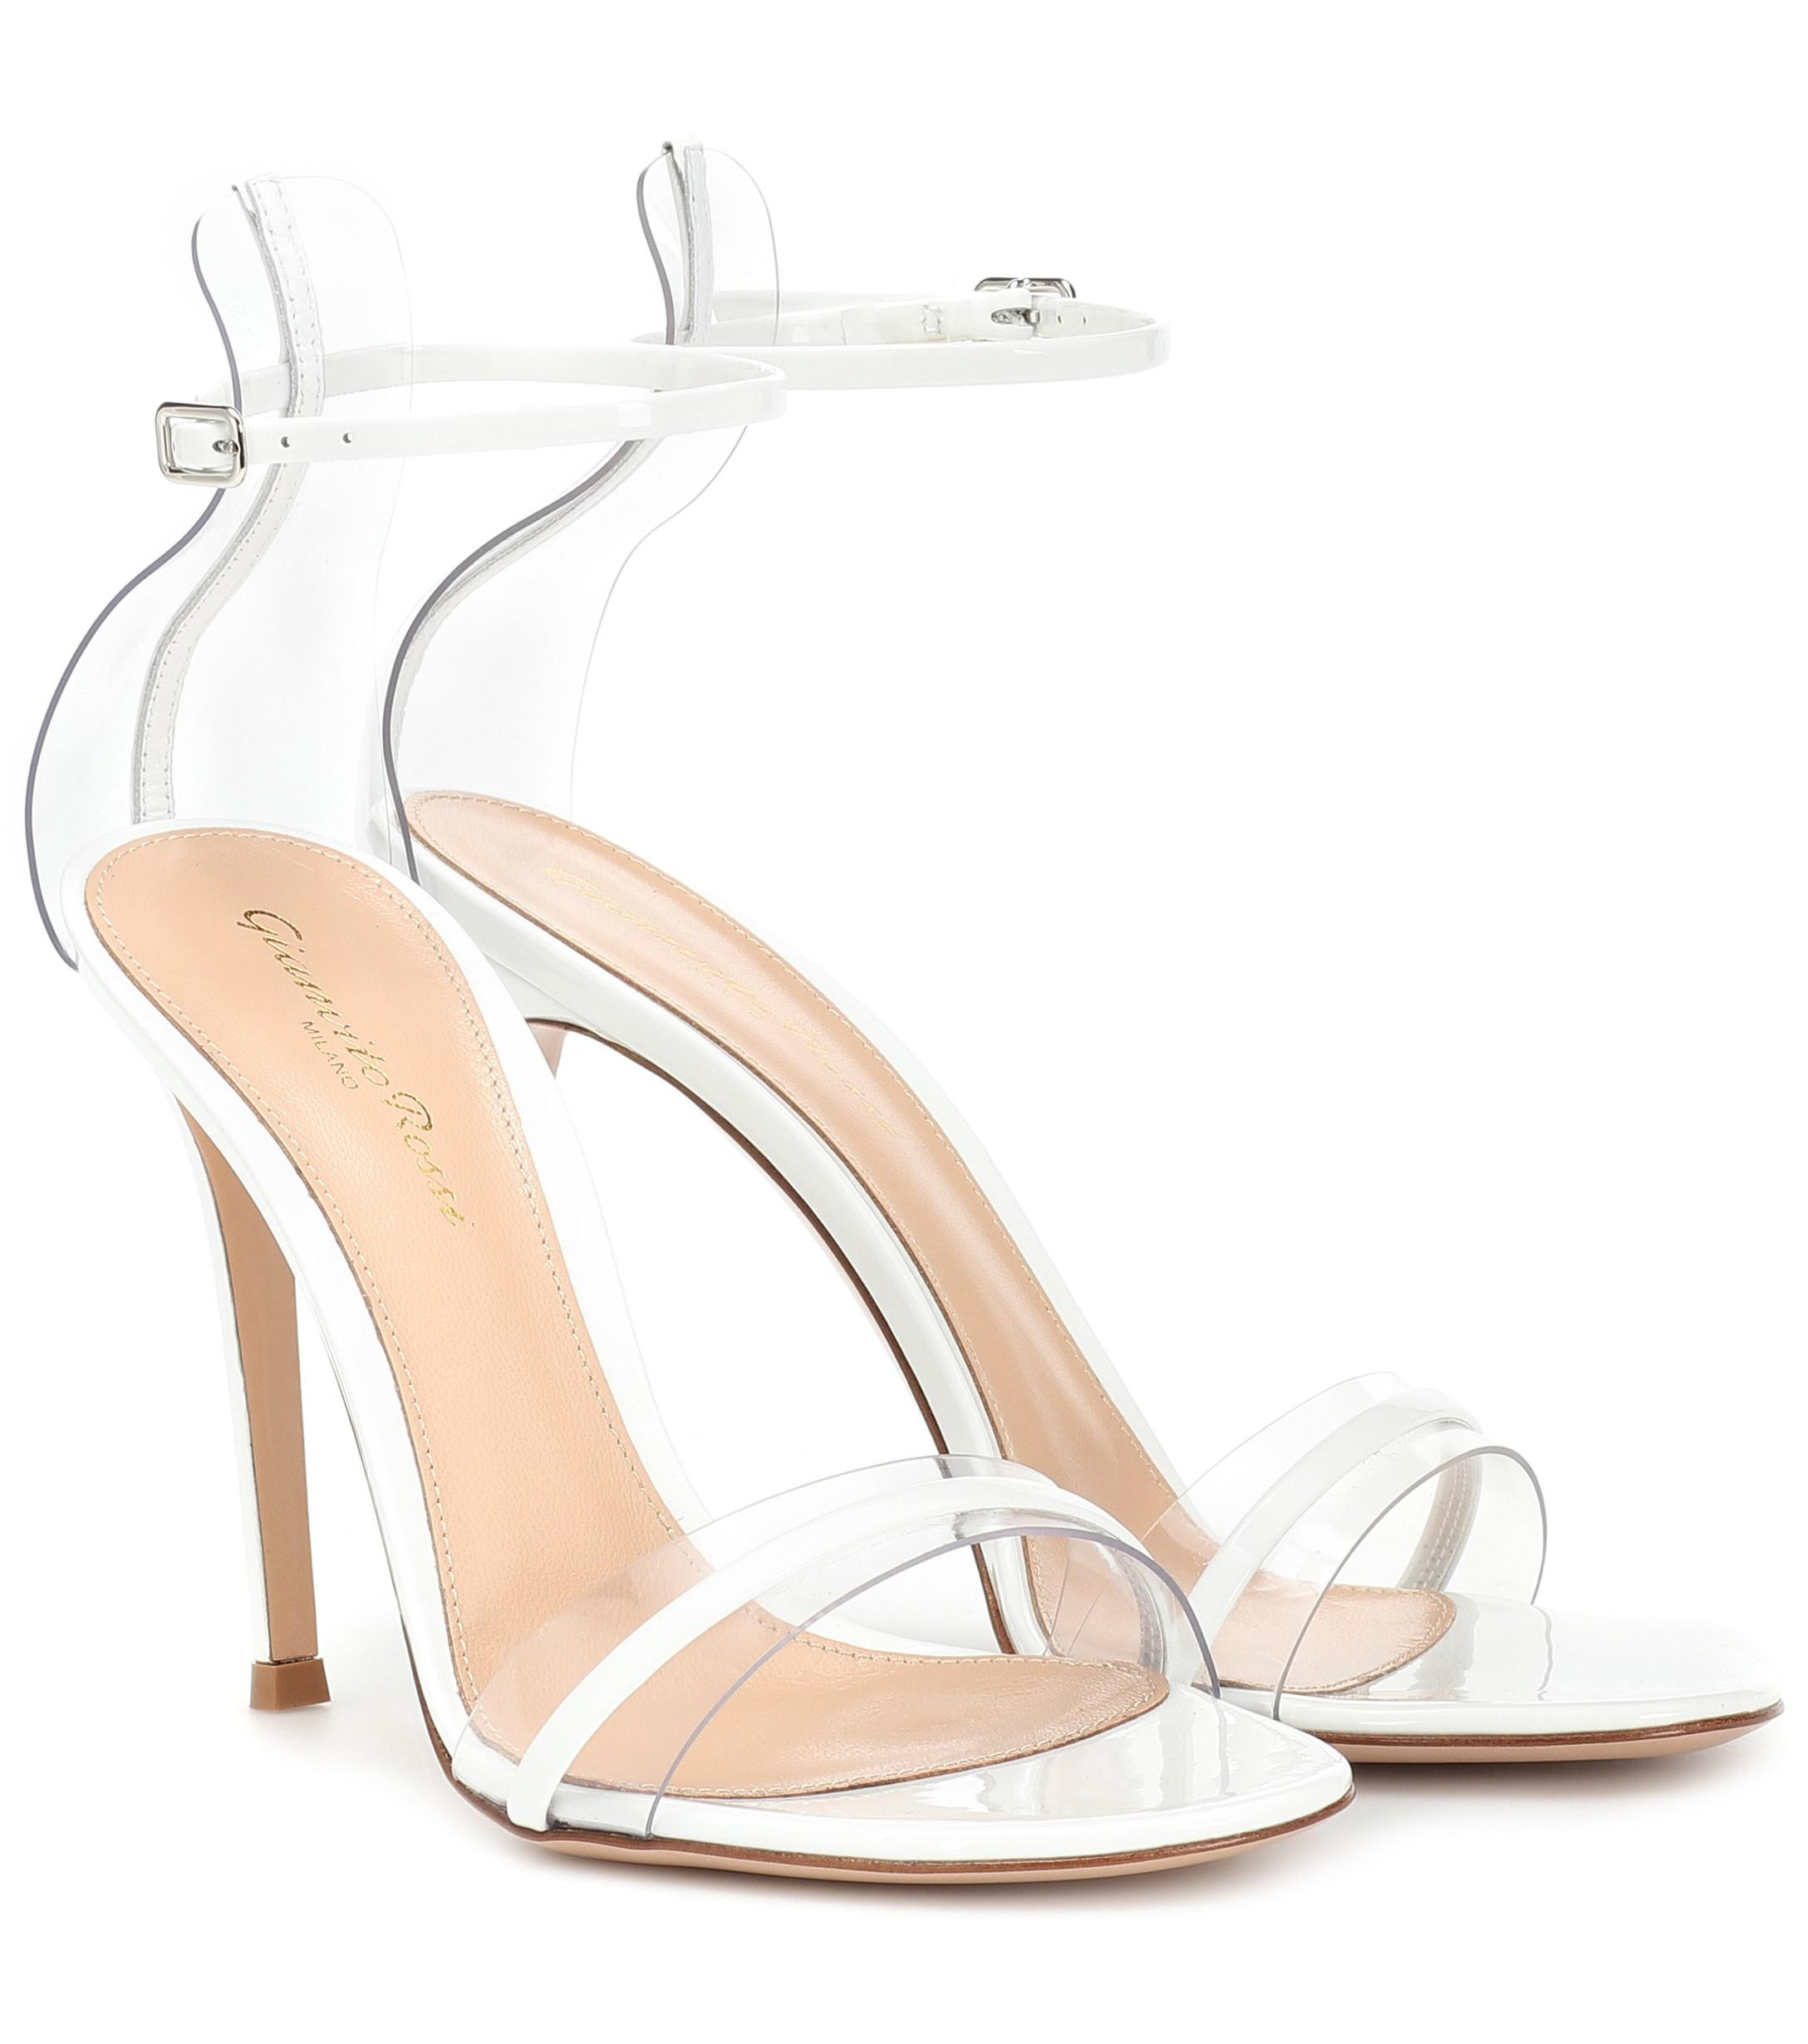 b85a66a113aa7 Lyst - Gianvito Rossi G-string Leather Sandals in White